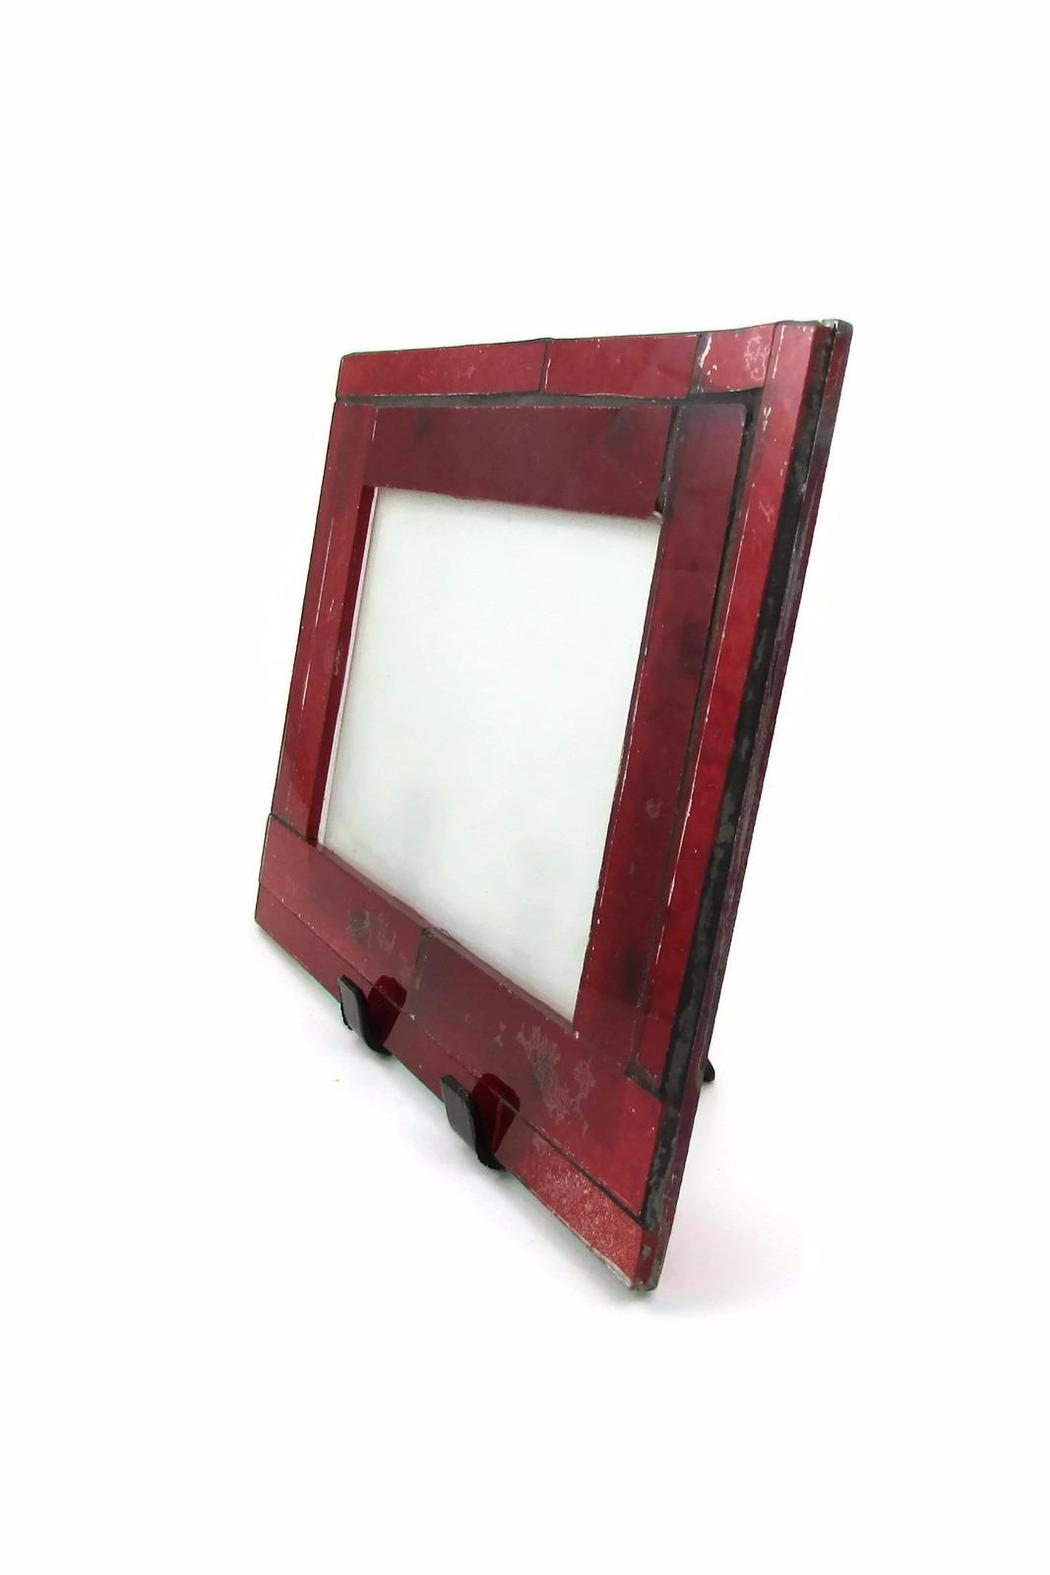 Tis Tik 4x6 Glass Frame From Cambridge Shoptiques